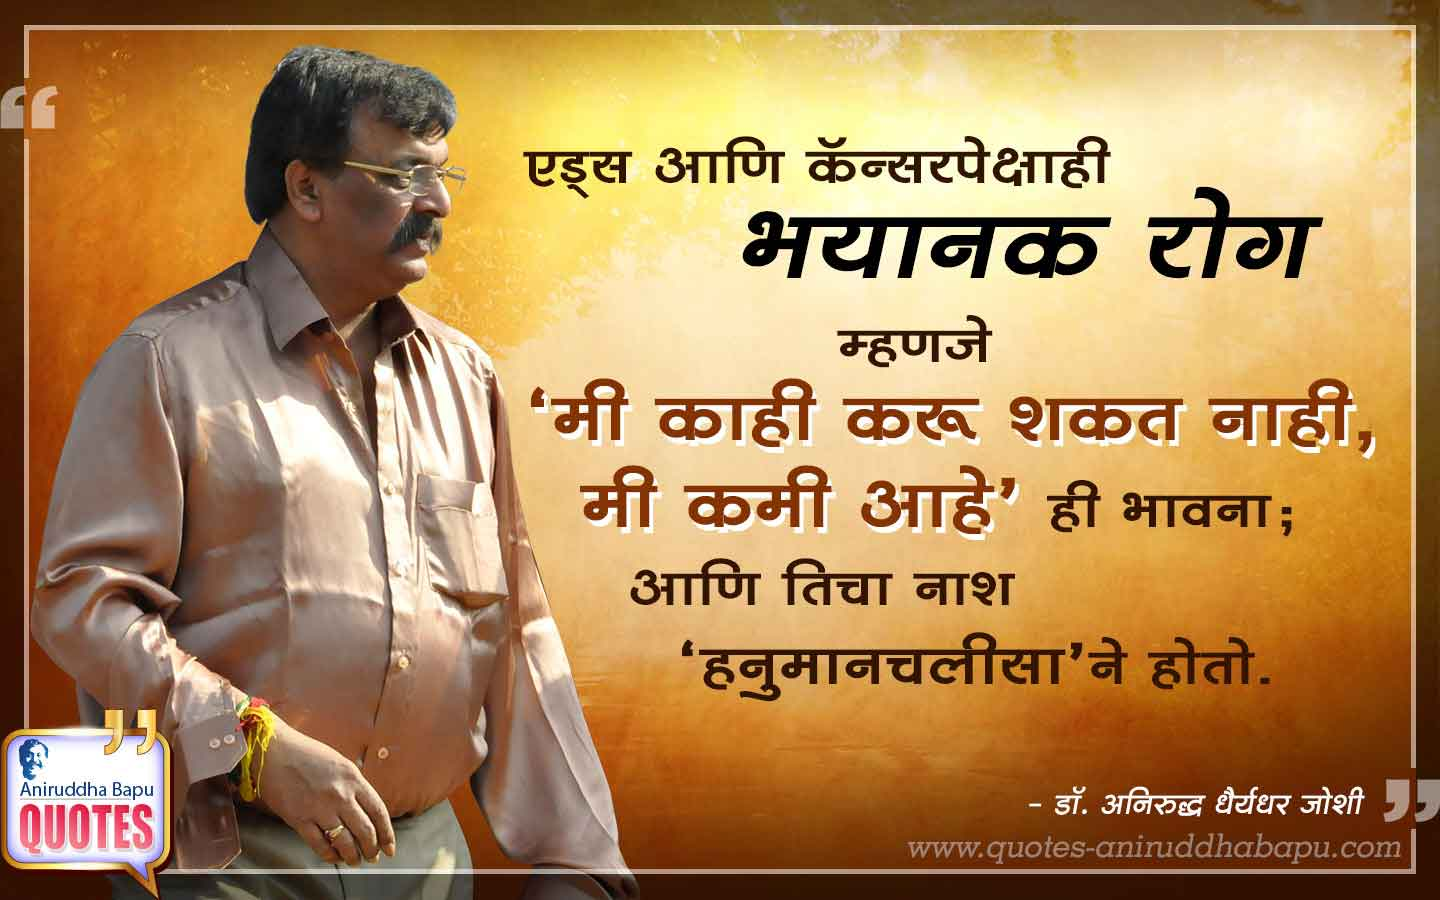 home aniruddha bapu quotes